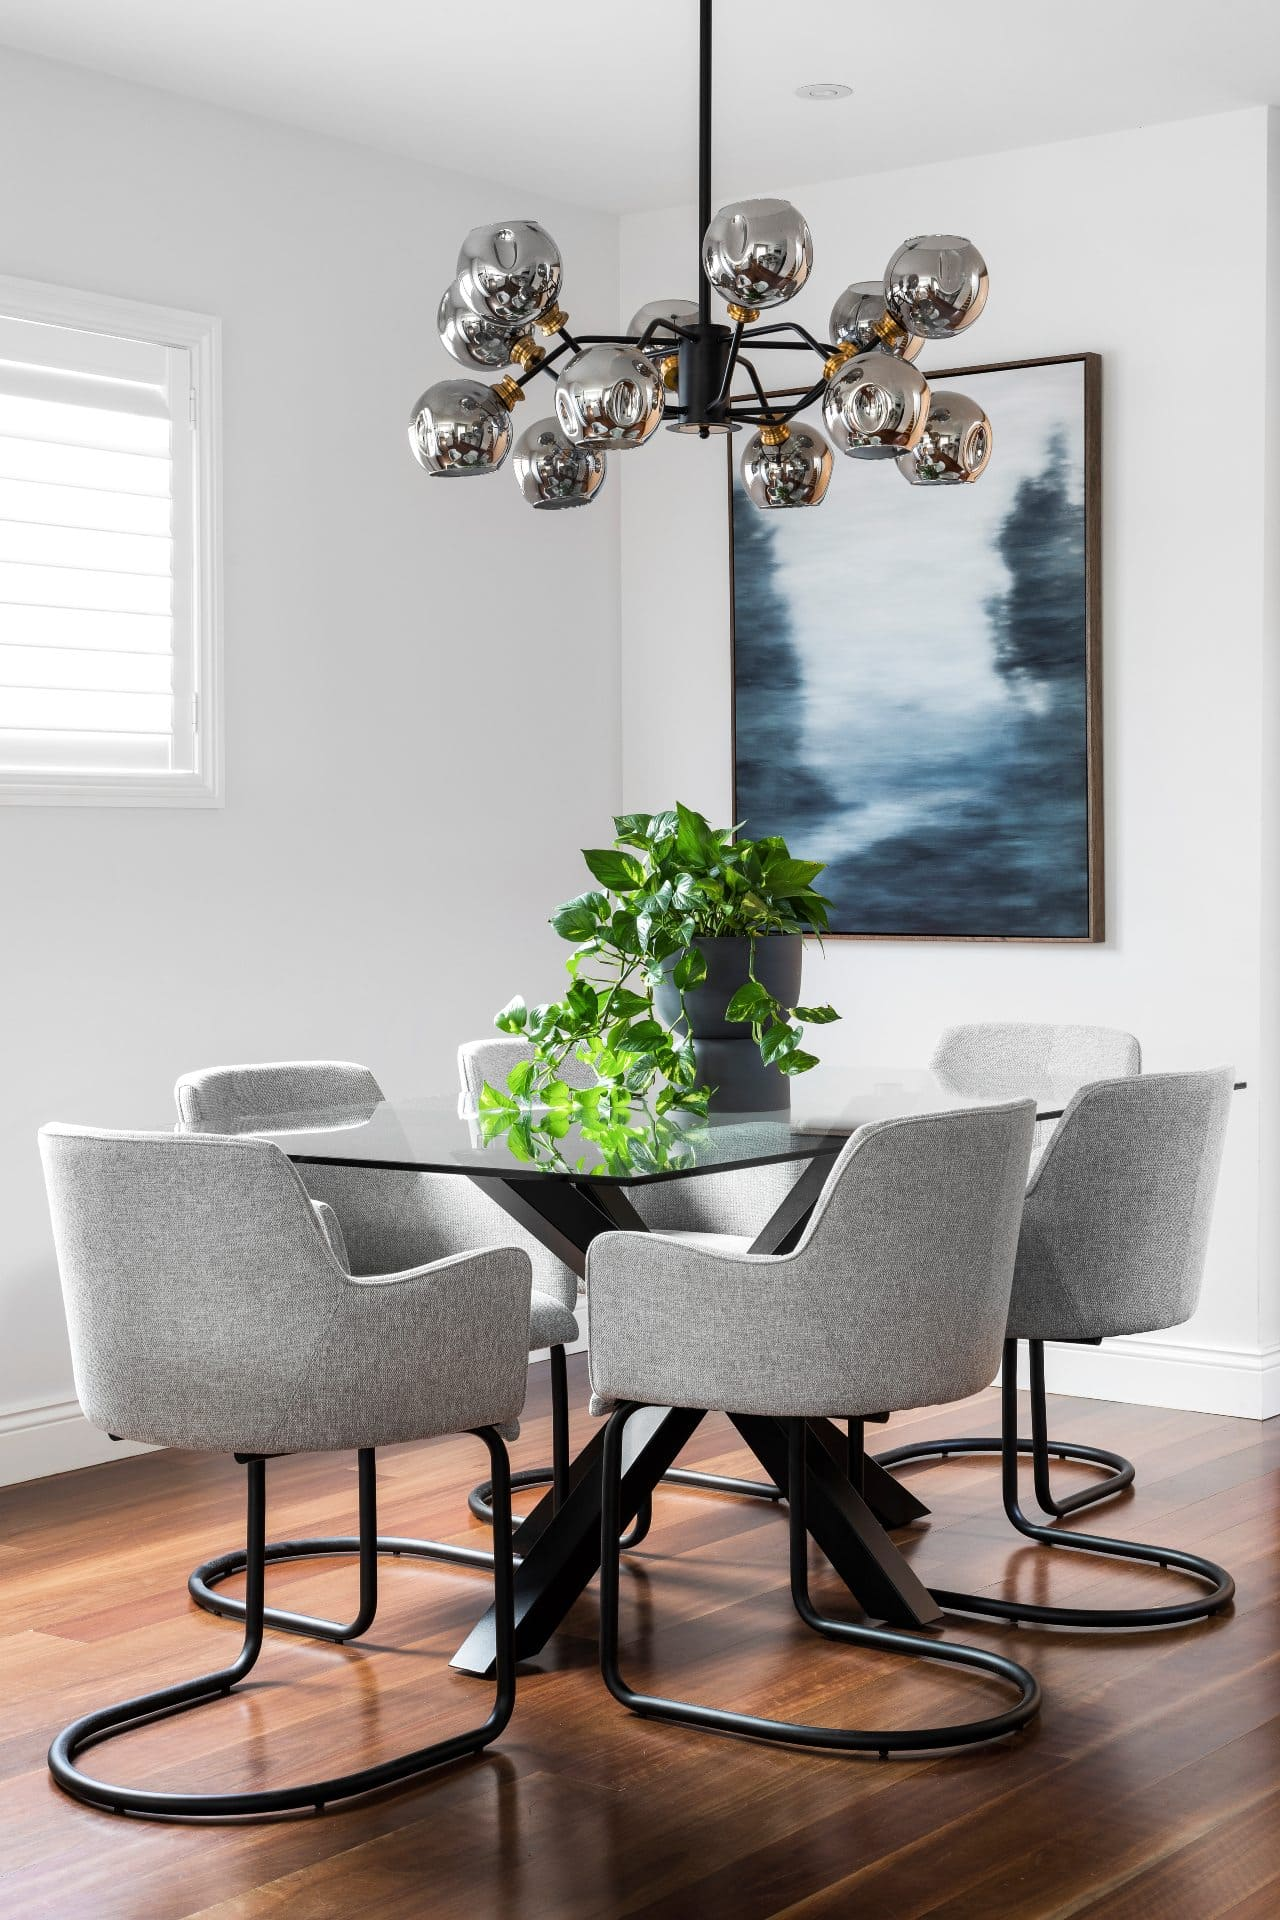 modern dining room design with glass rectangle dining table grey upholstered chairs and mid century glass pendant light